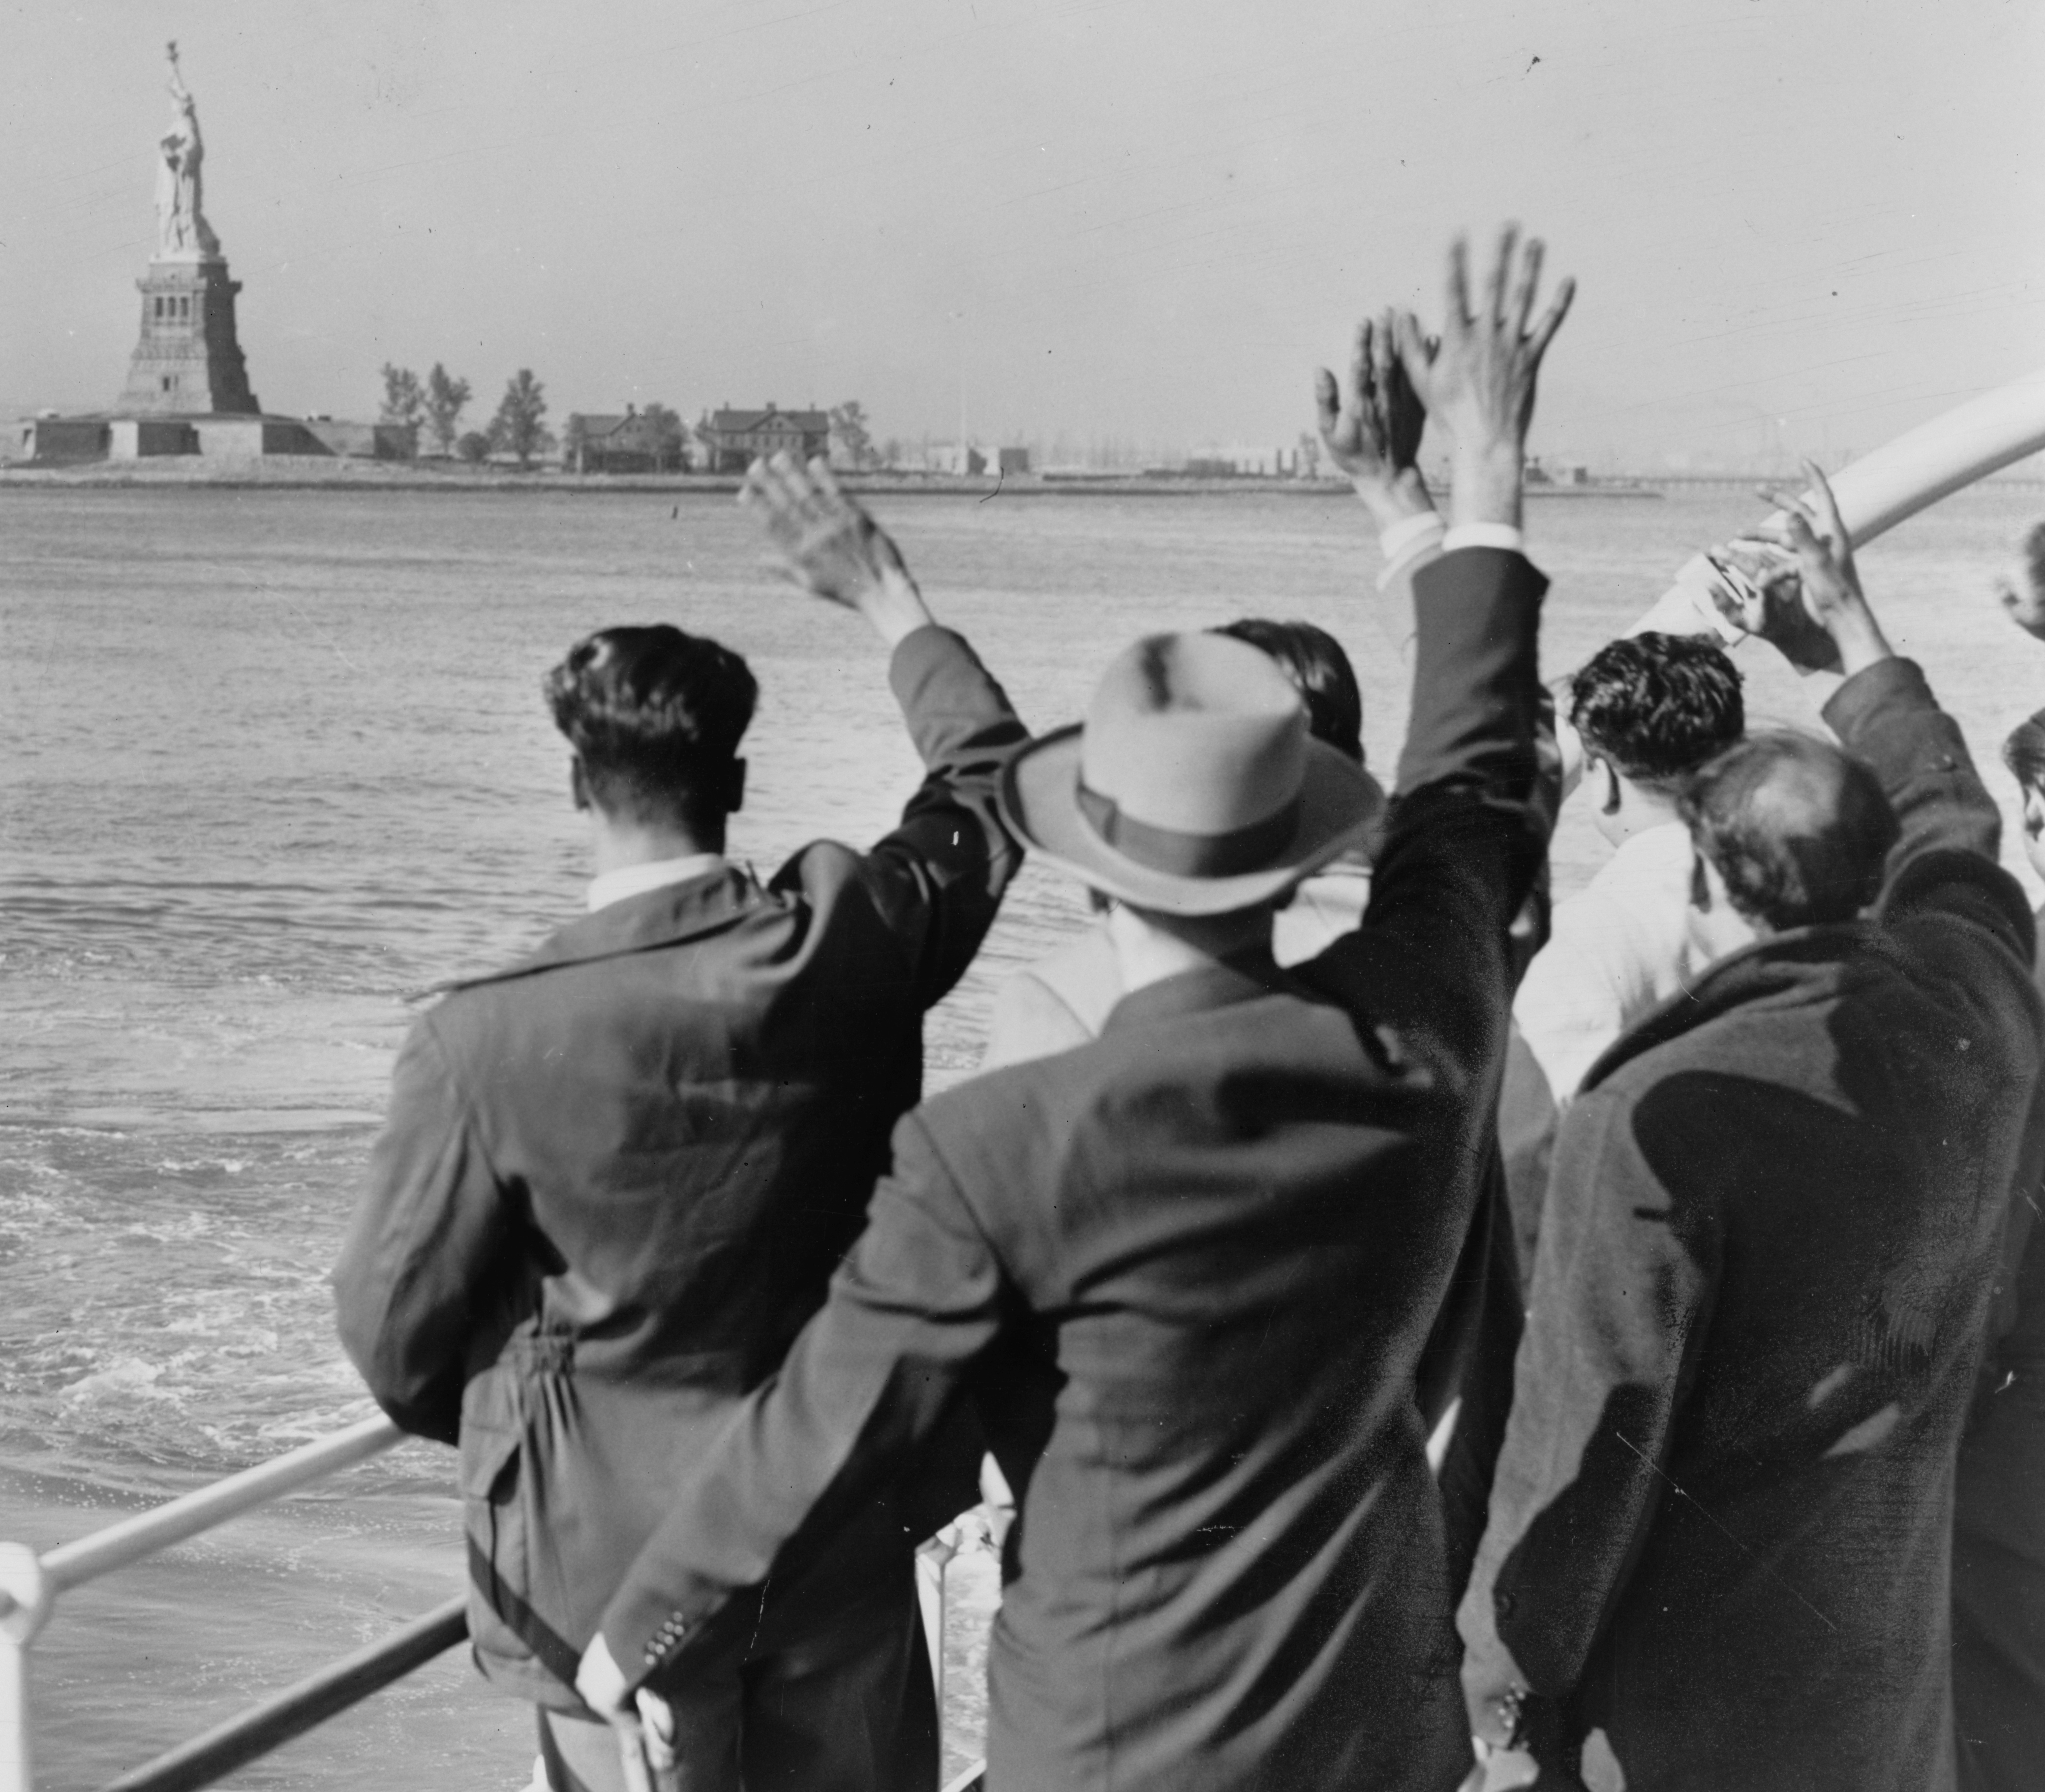 Circa 1952, a group of 171  illegal aliens  wave goodbye to the Statue of Liberty from the Coast Guard cutter that took them from Ellis Island to the Home Lines ship 'Argentina' in Hoboken for deportation.